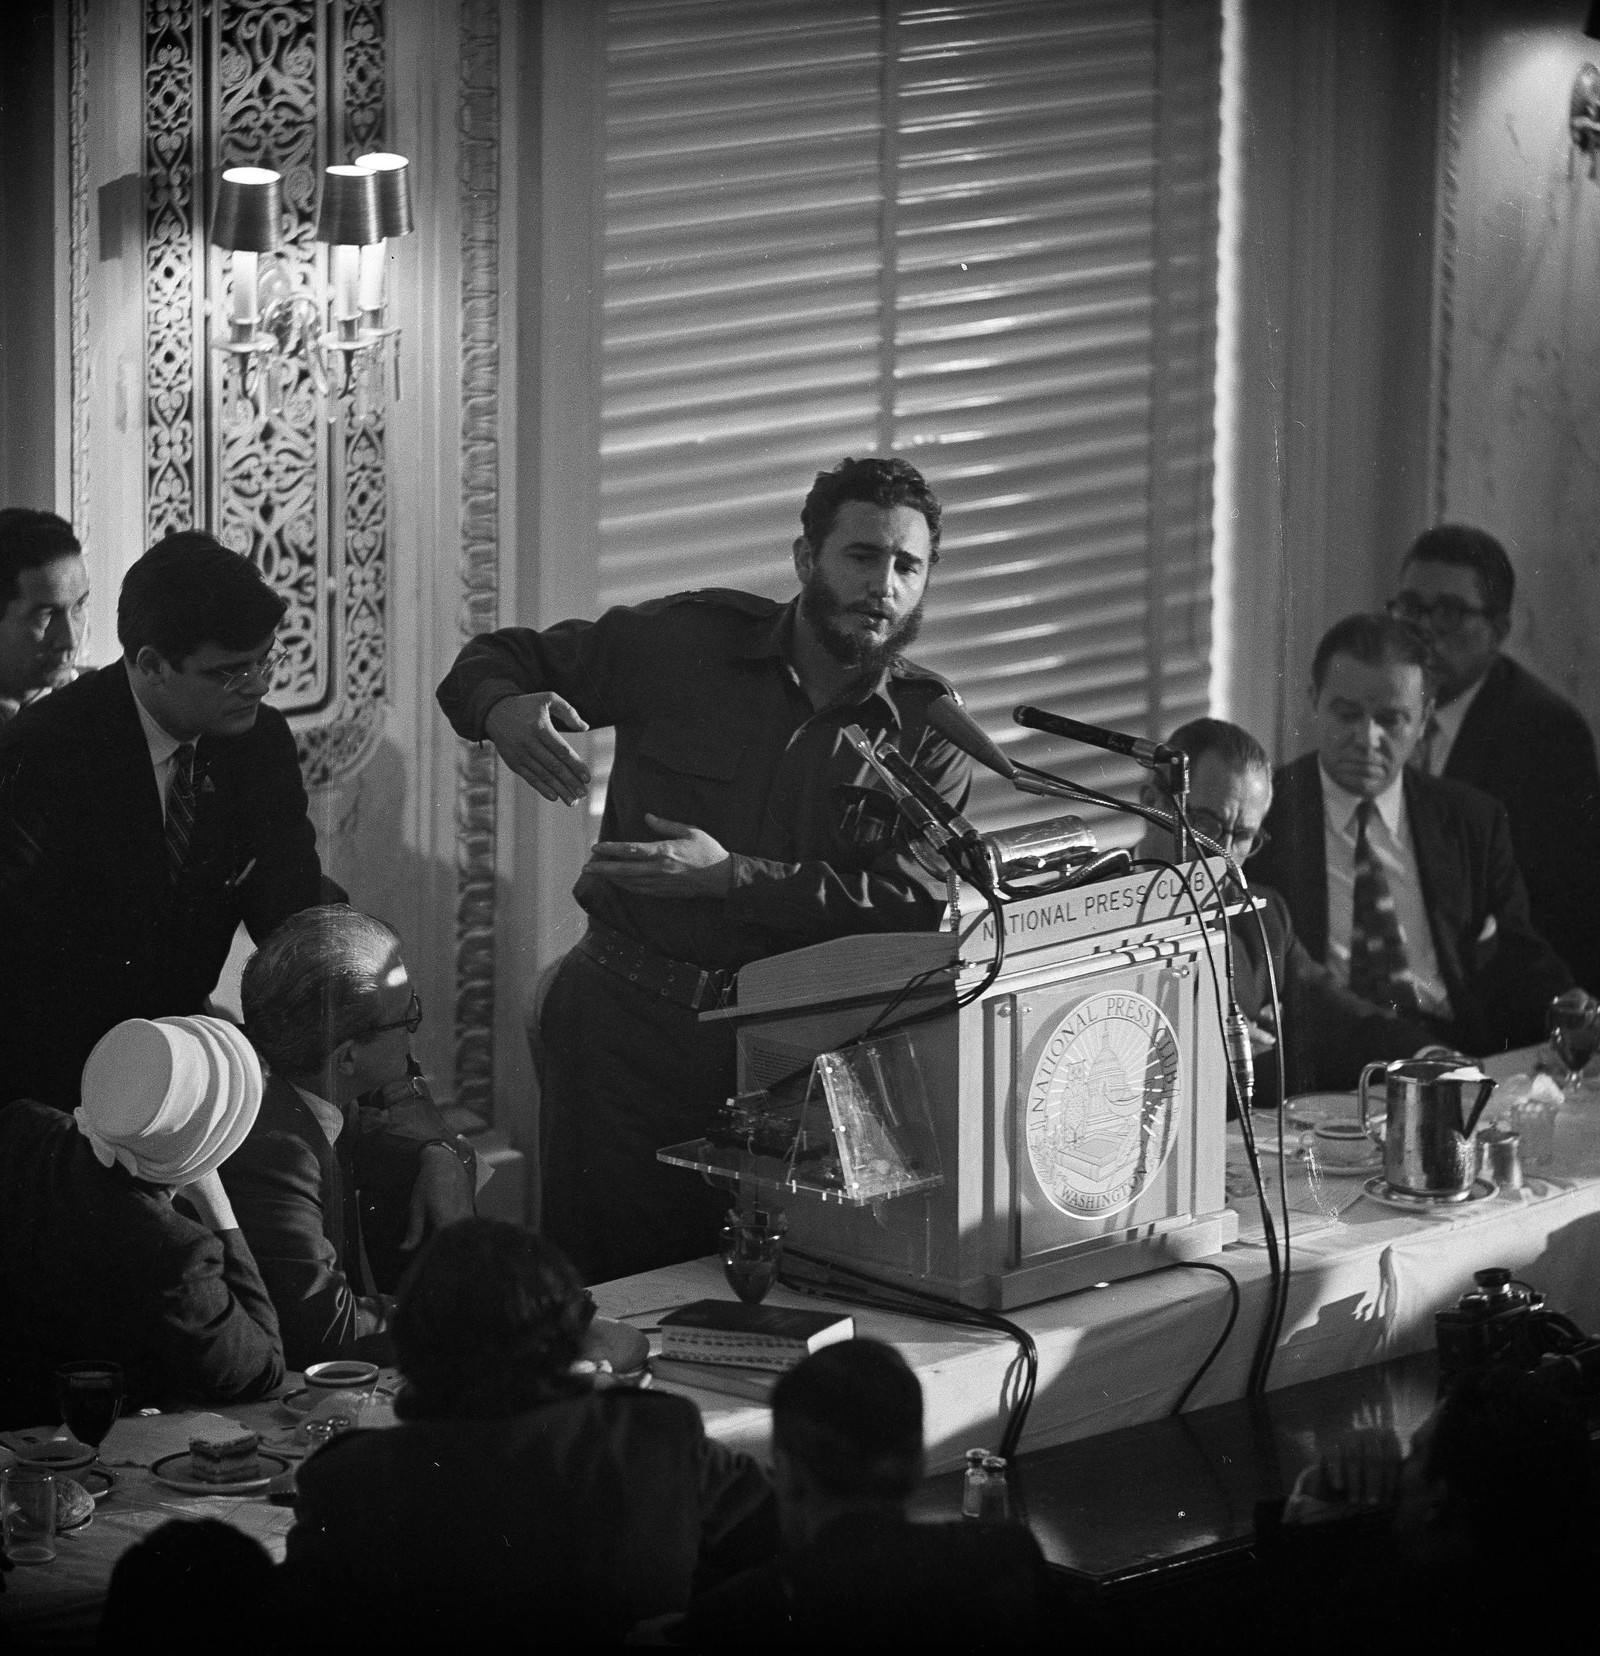 20. april 1959, fire måneder etter at den amerikanskvennlige presidenten Fulgencio Batista var styrtet holdt Fidel Castro en tale i National Press Club i Washington D.C.